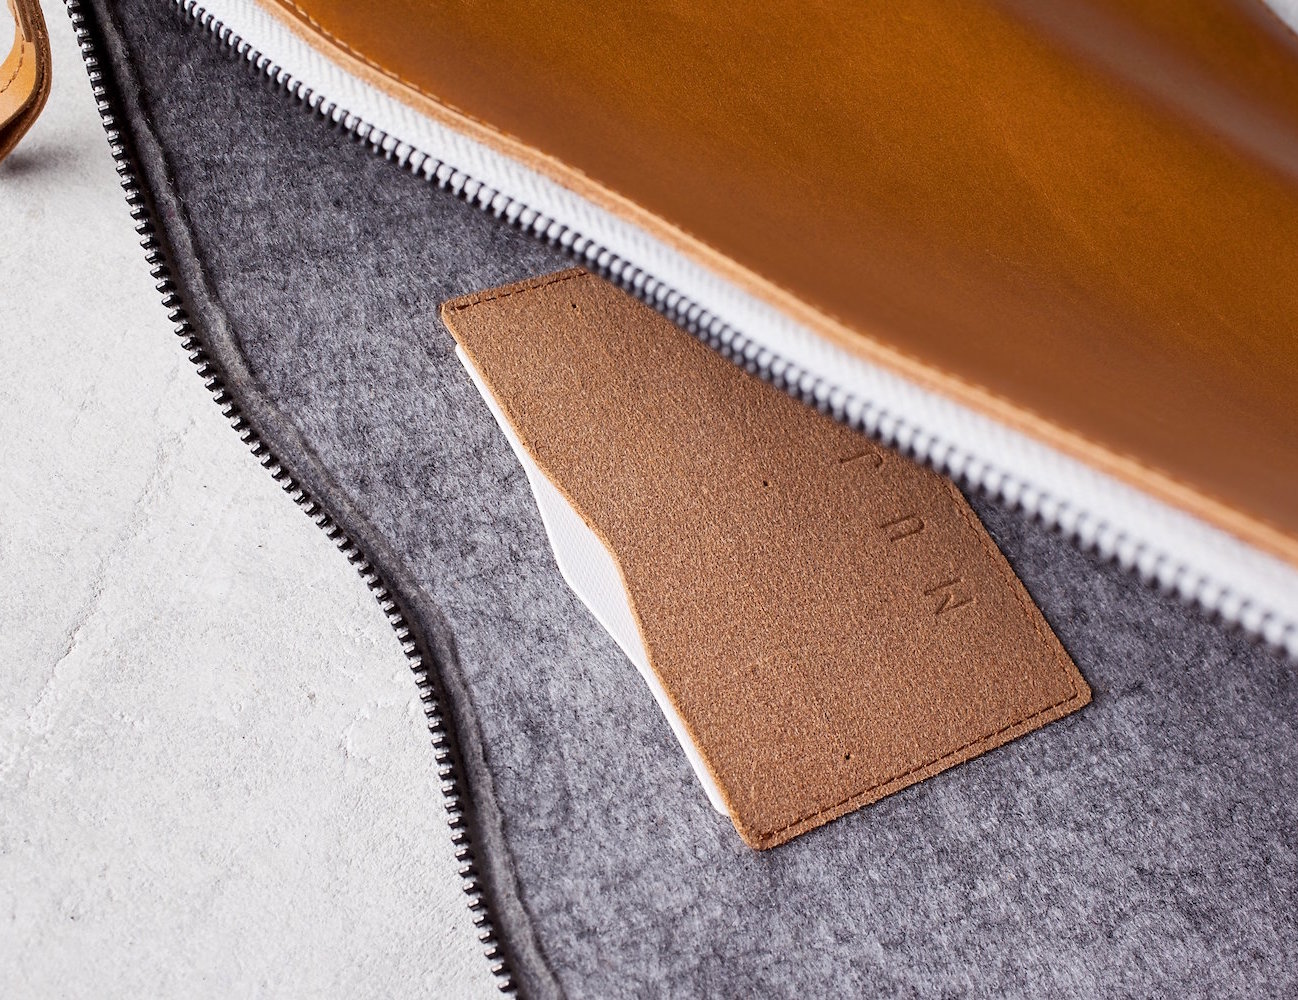 leather-macbook-folio-sleeve-by-mujjo-05